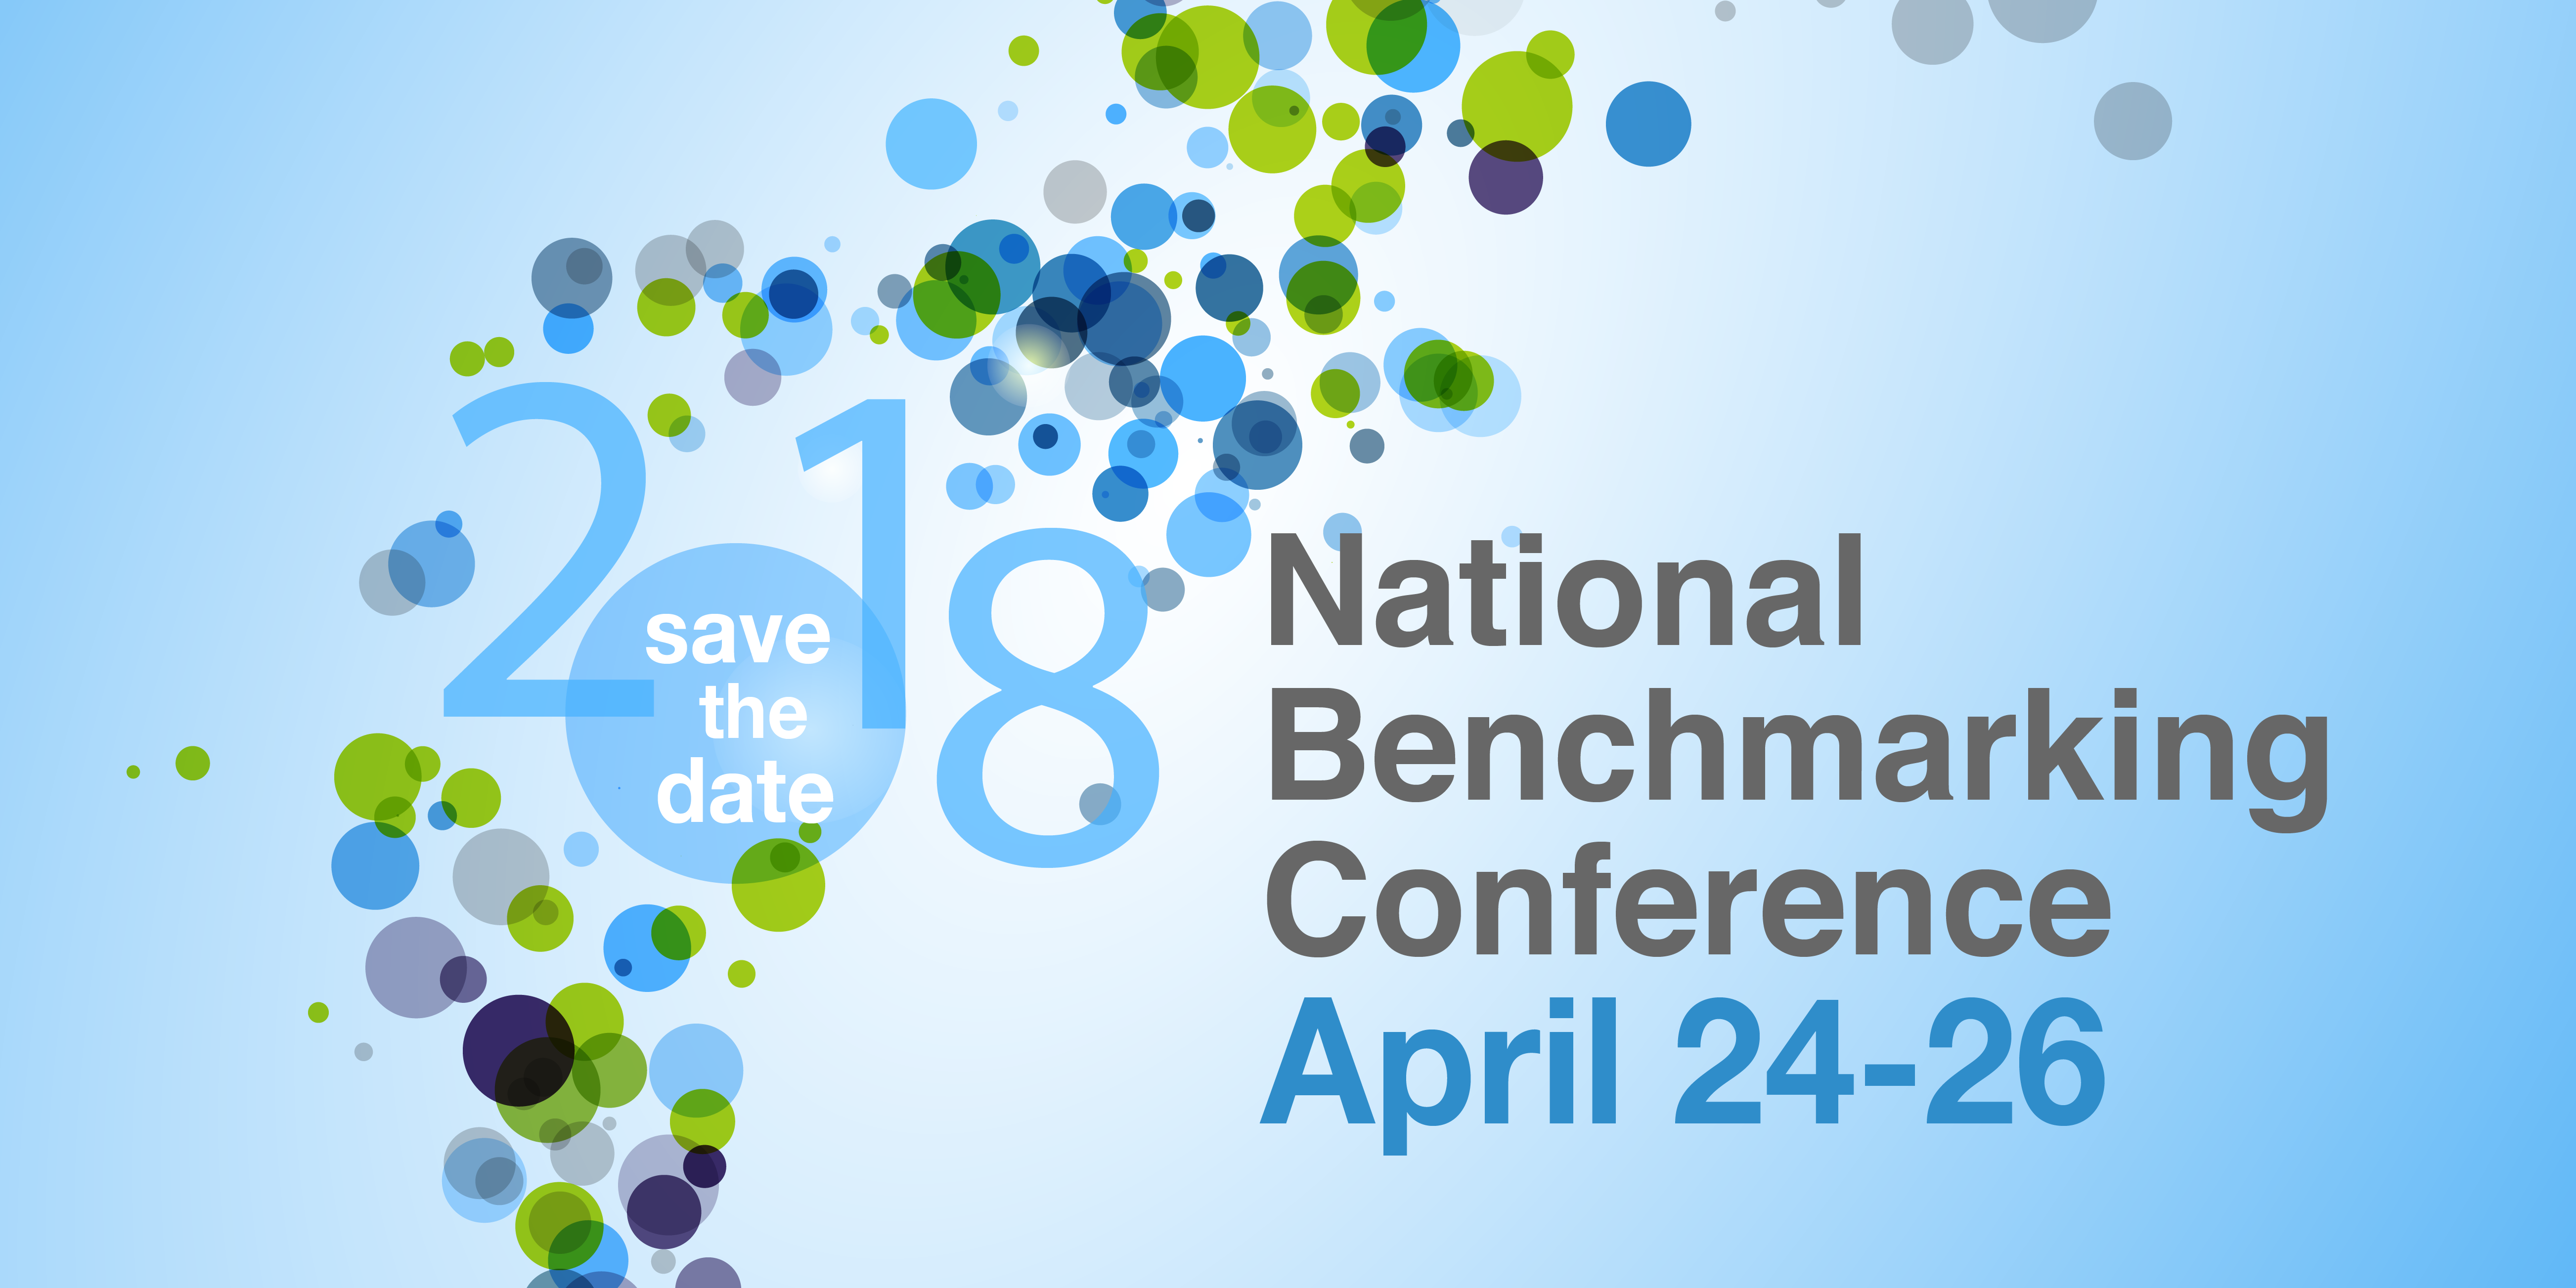 Benchmarking Conference